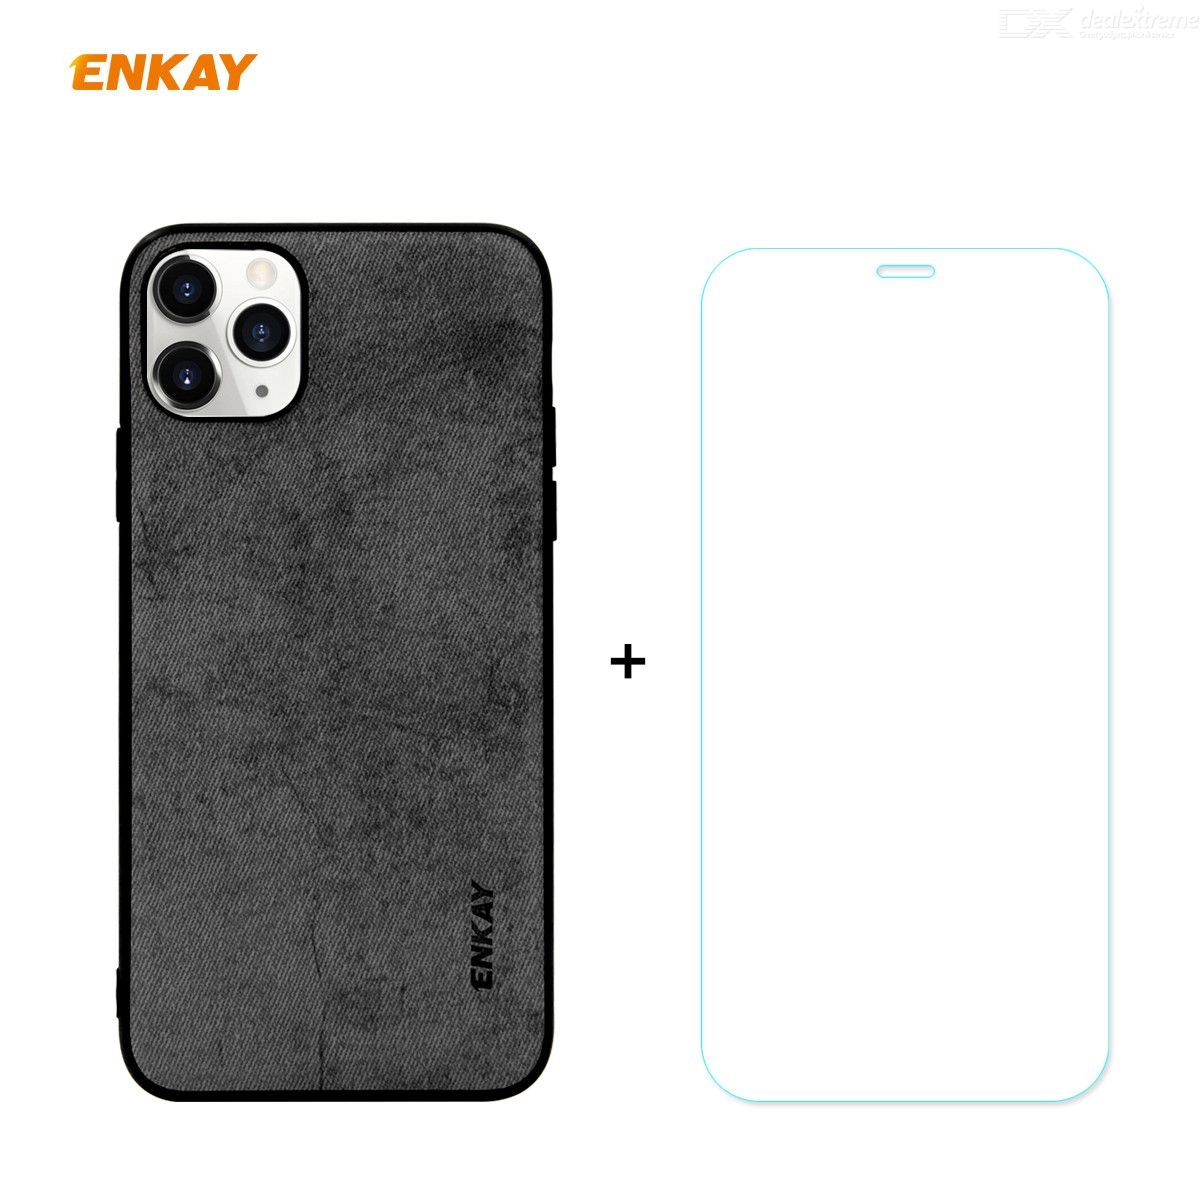 ENKAY Hat-Prince PU + TPU Soft Back Cover + 9H 2.5D Arc Edge Tempered Glass Screen Protector for iPhone 11 Pro